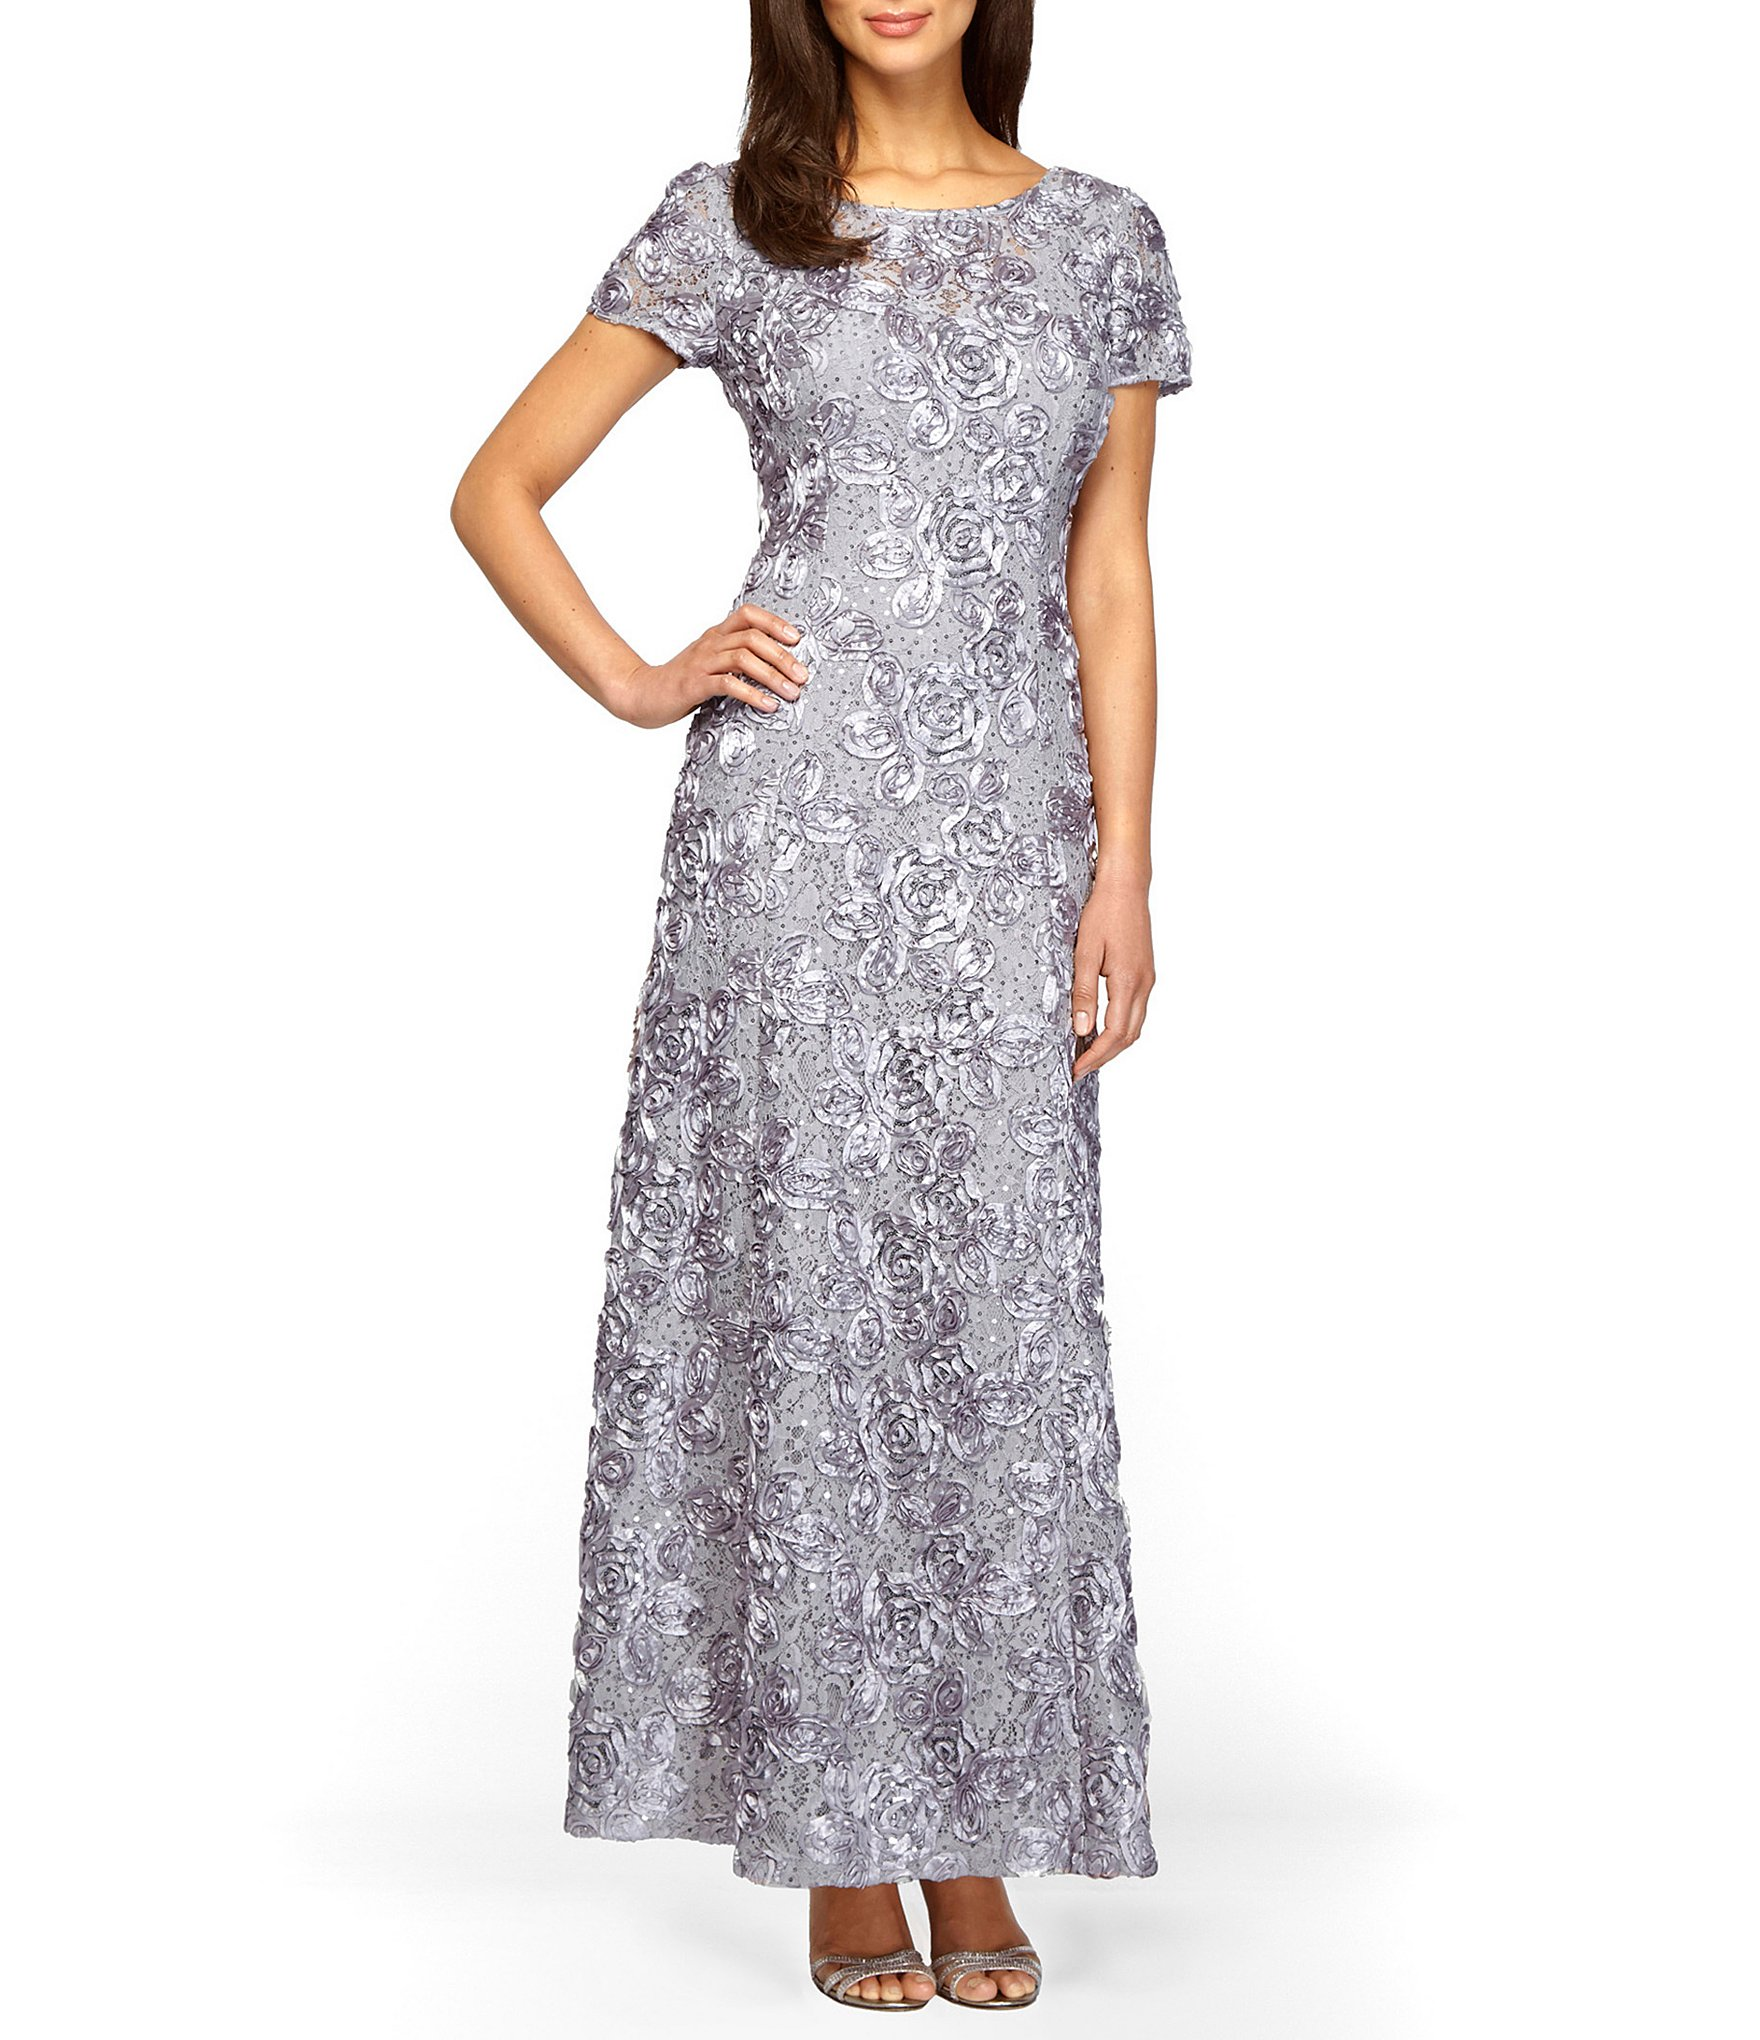 dillards womens evening dresses photo - 1